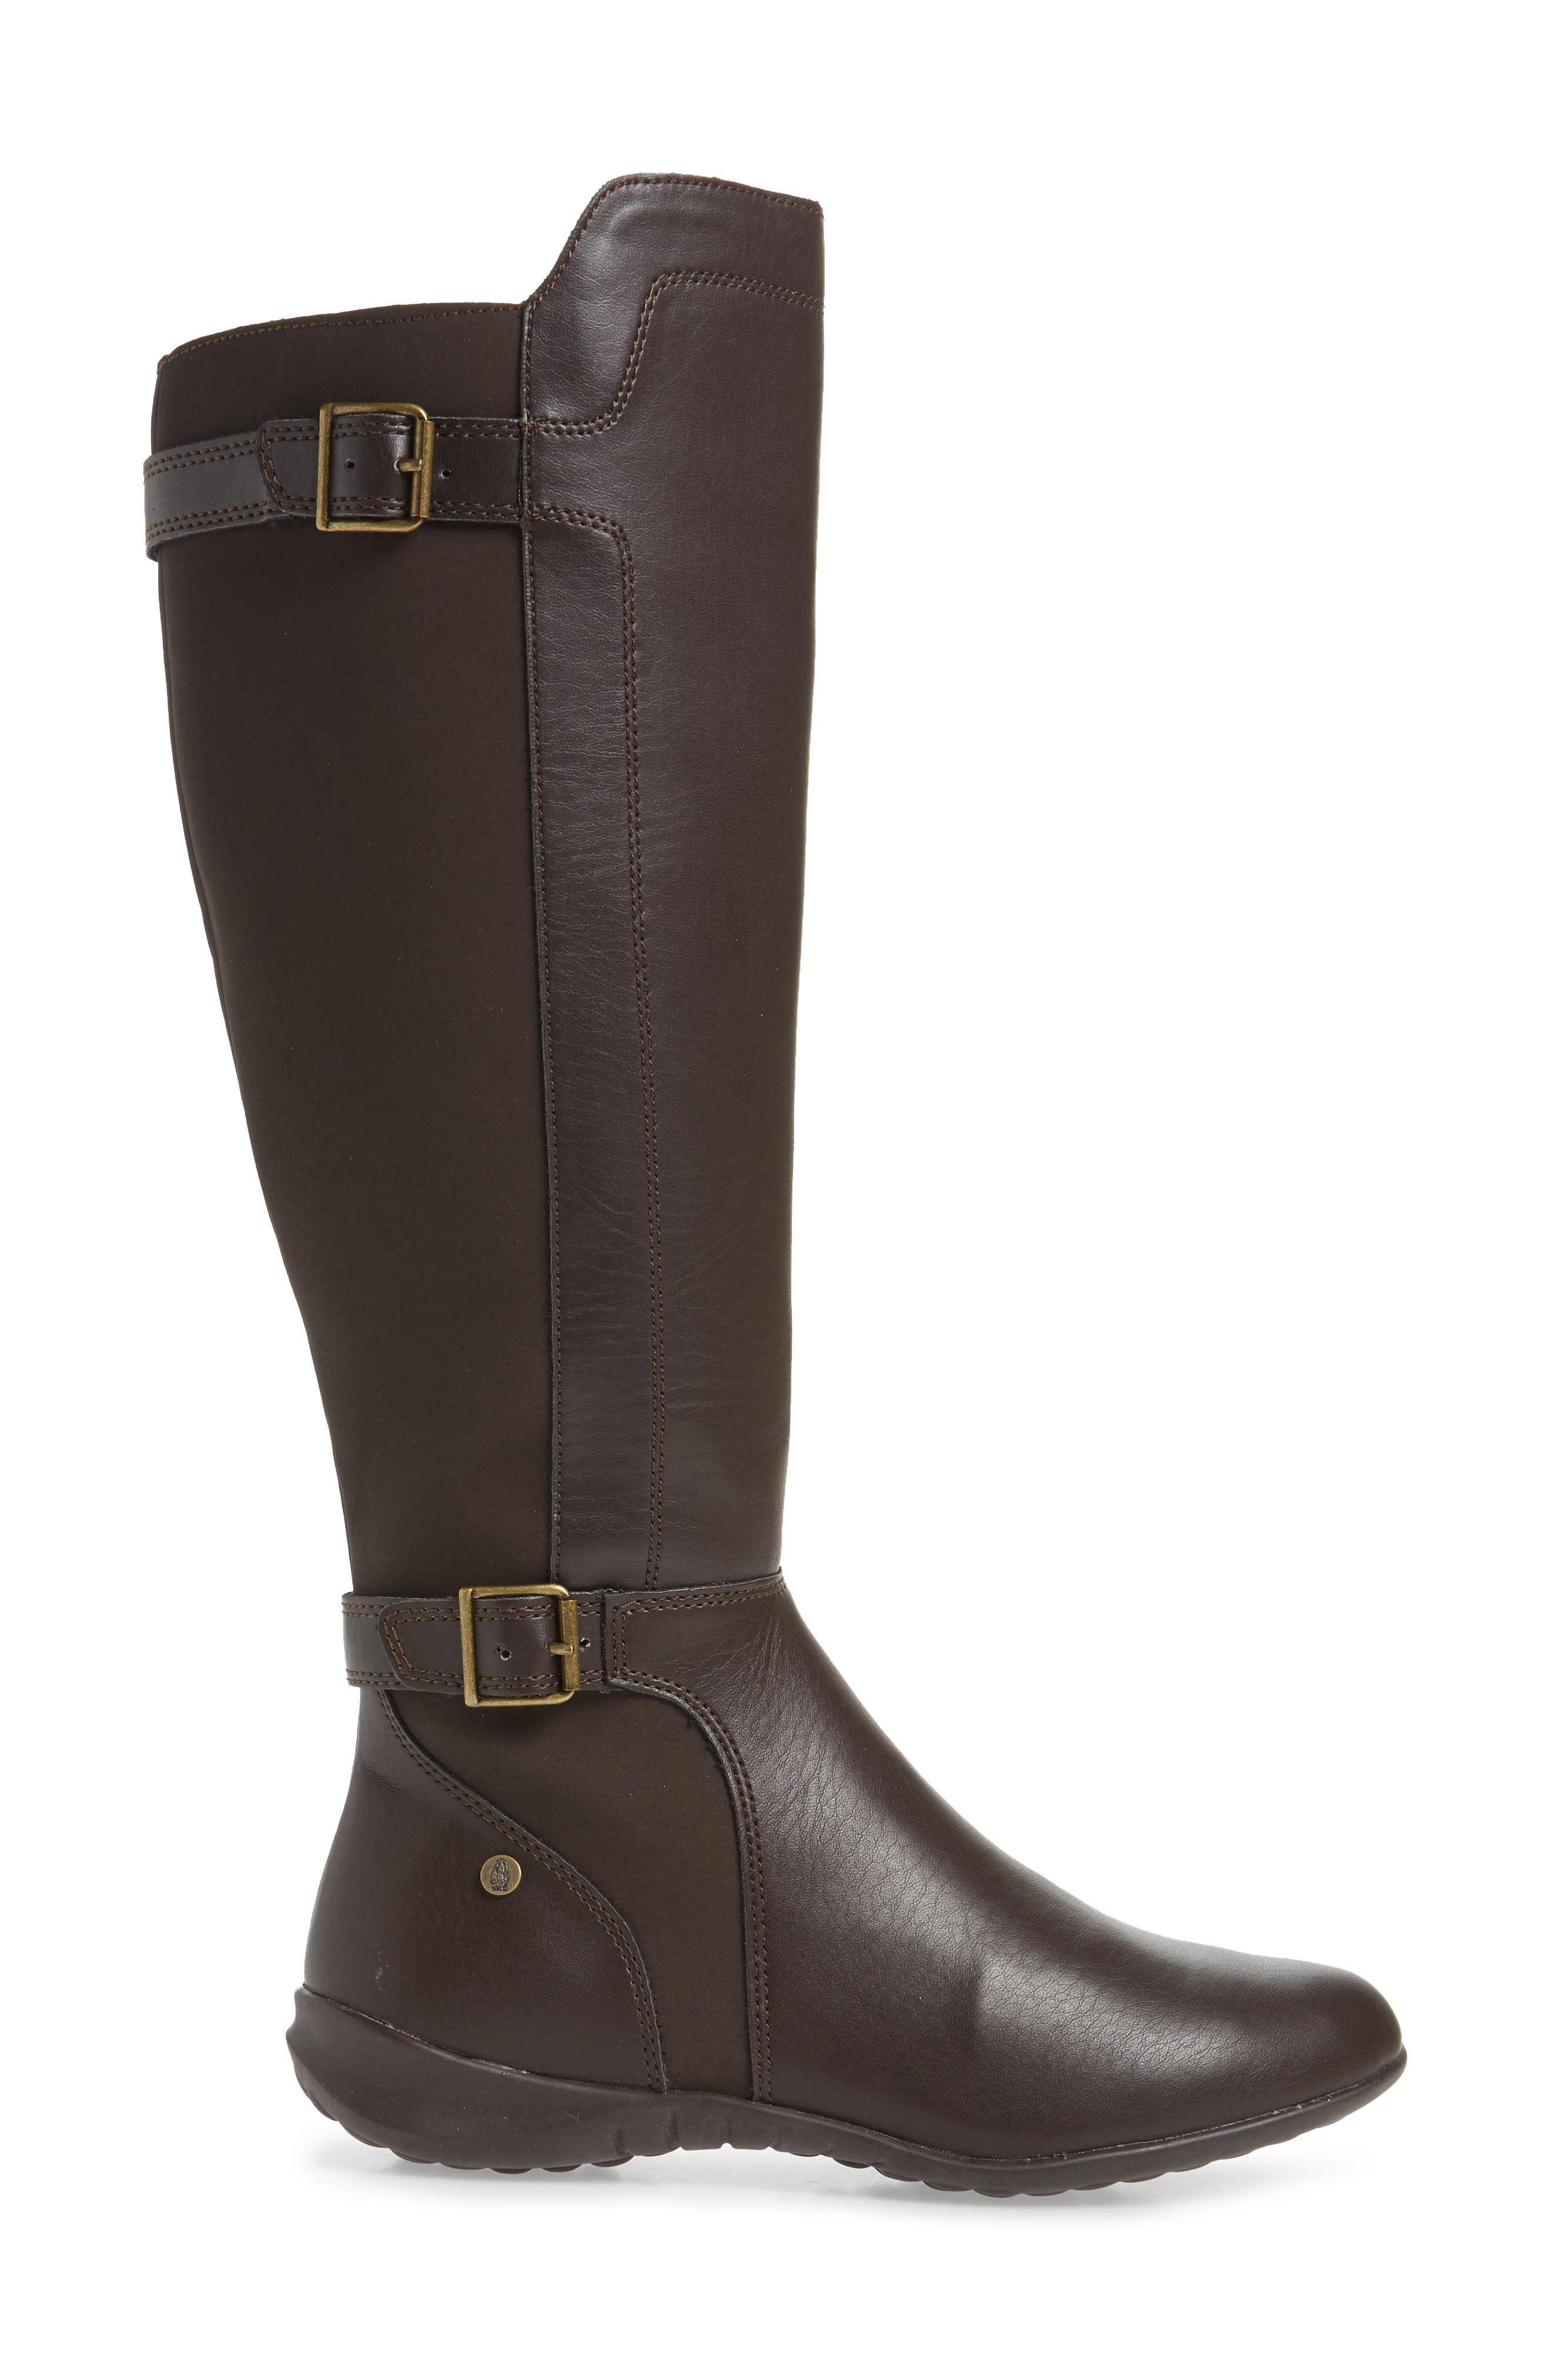 HUSH PUPPIES<SUP>®</SUP>, Bria Knee High Boot, Alternate thumbnail 3, color, DARK BROWN FAUX LEATHER